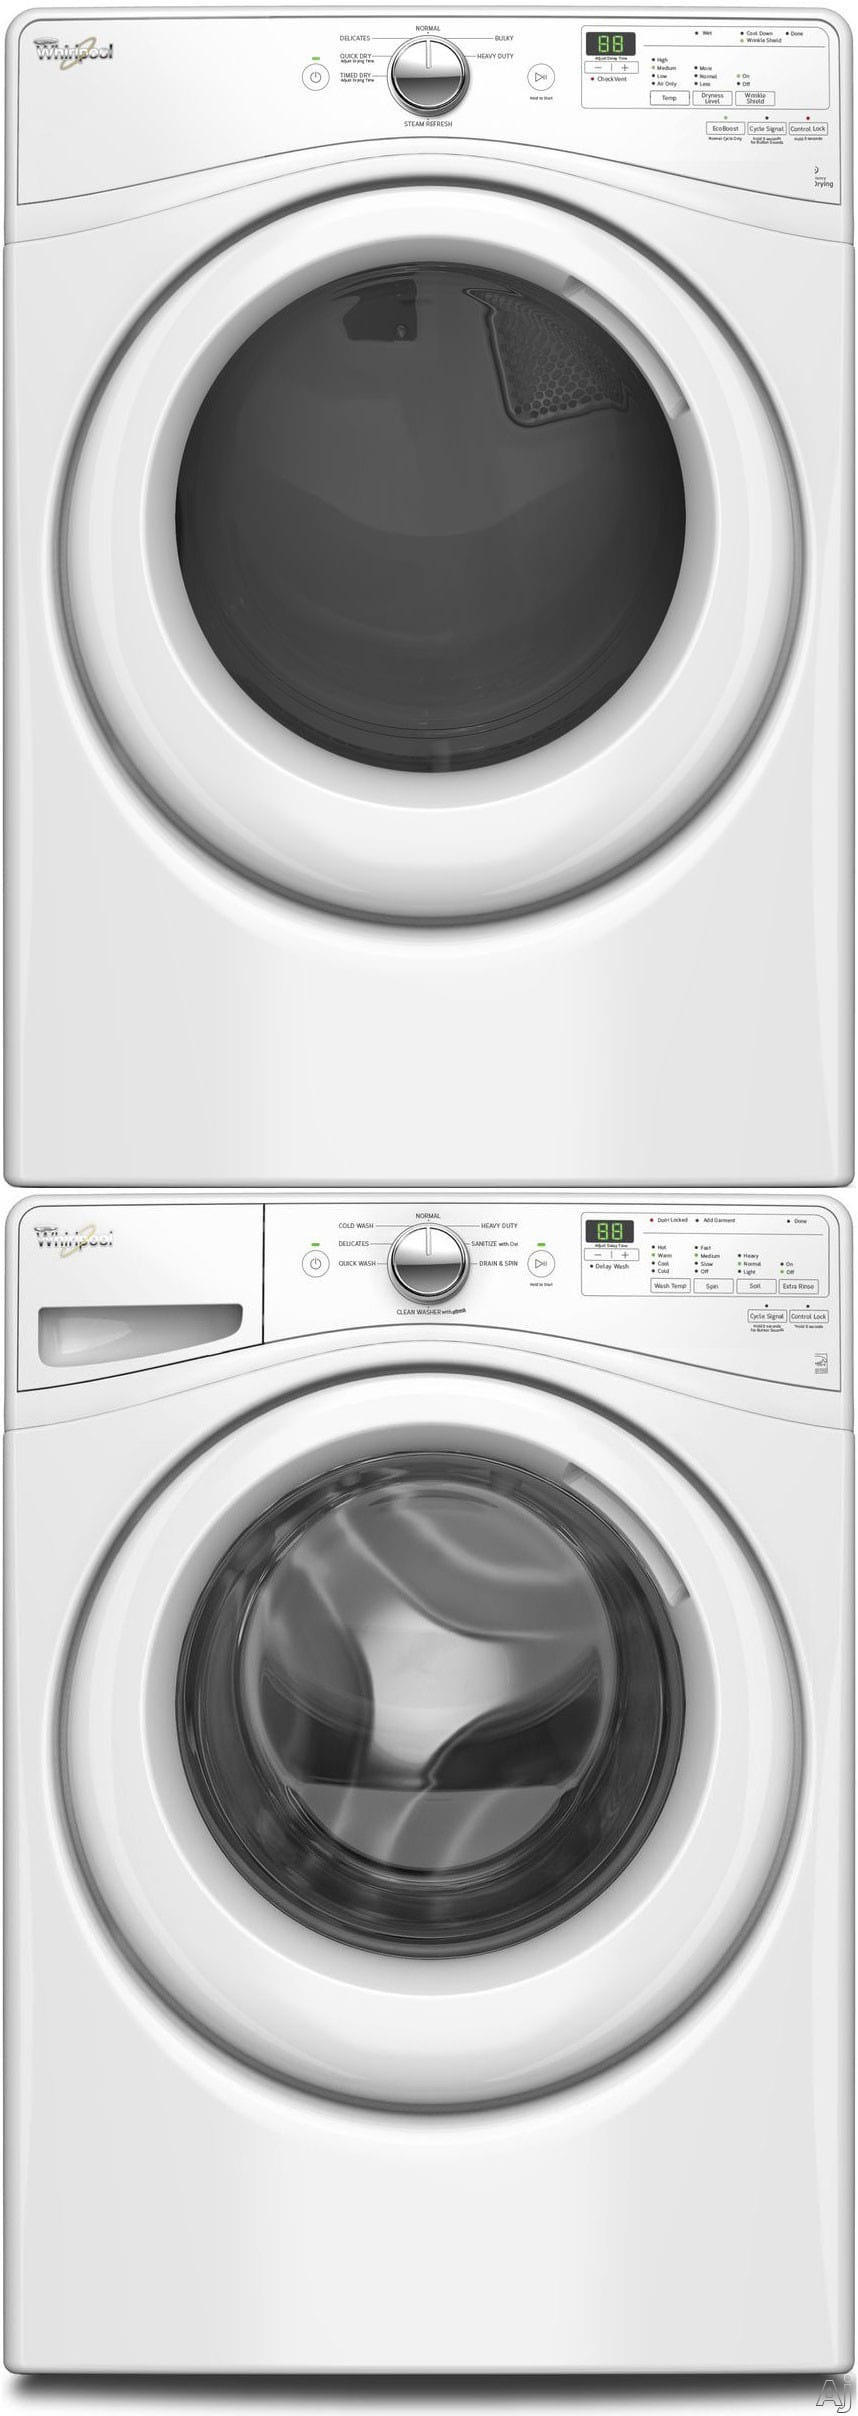 Whirlpool Wpwadrgw75903 Stacked Washer Amp Dryer Set With